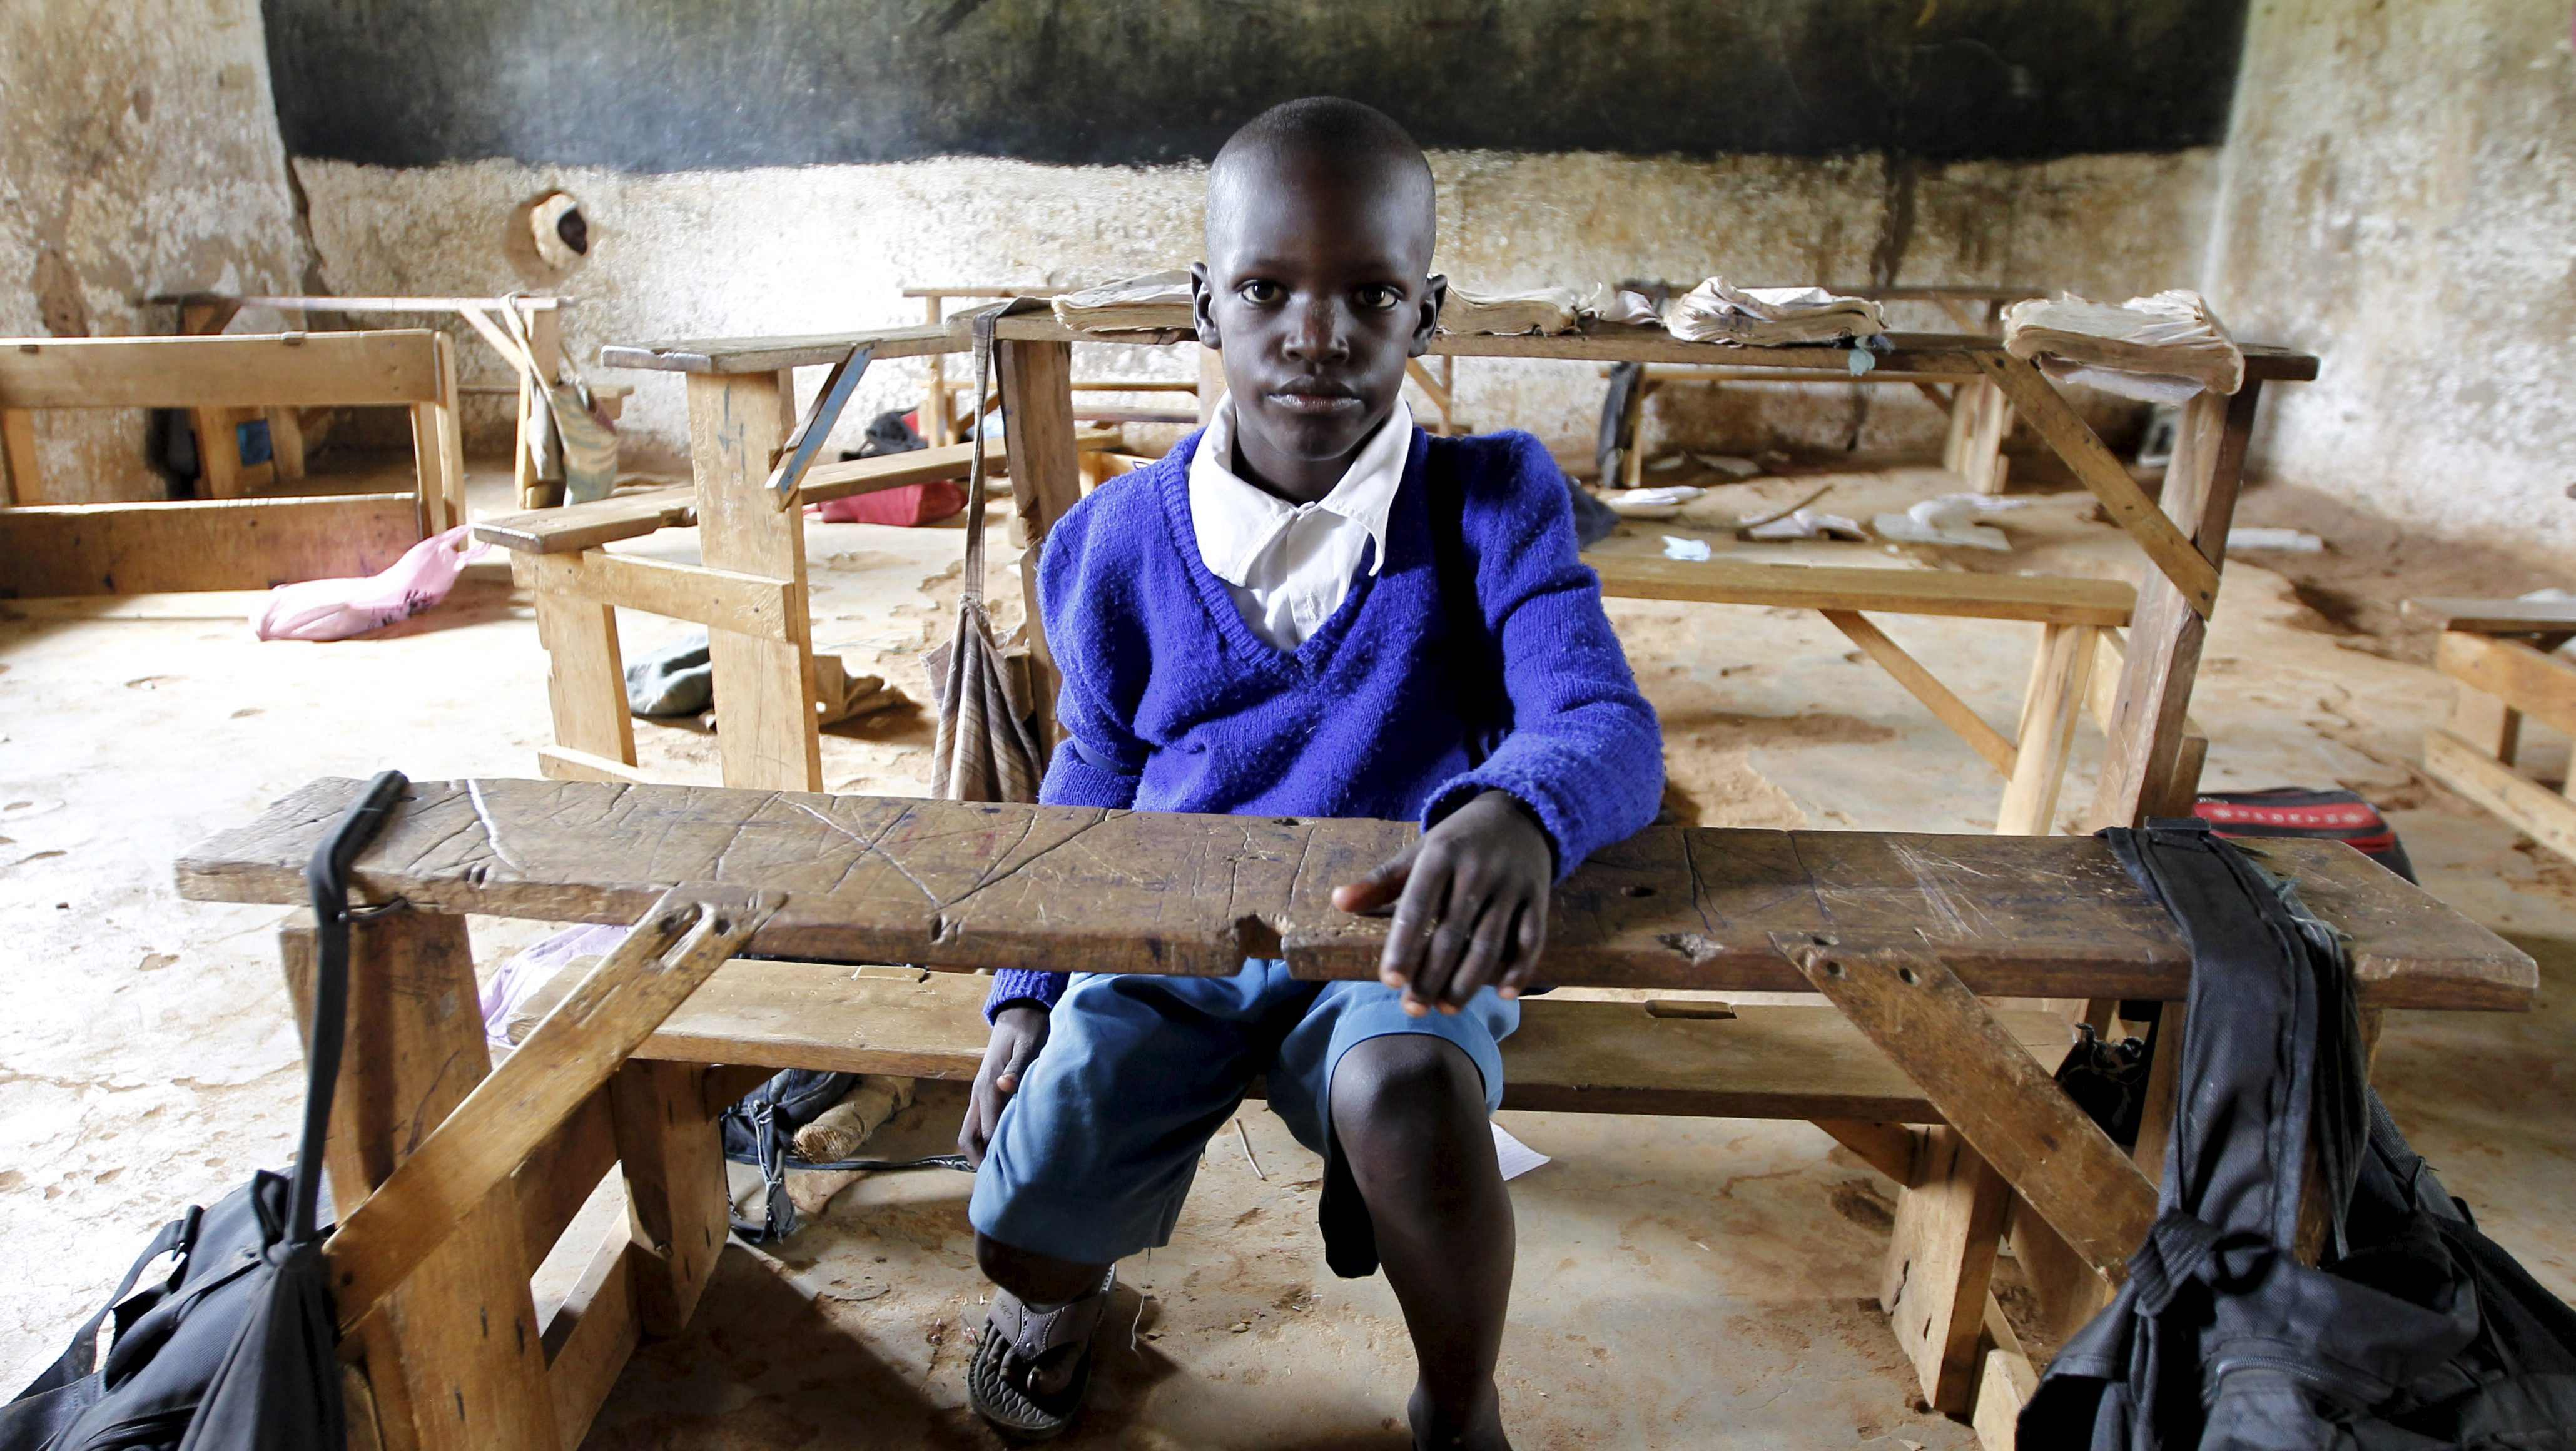 Seven-year-old Barack Obama Okoth, named after U.S. President Barack Obama, sits inside an empty classroom as he speaks with Reuters at the Senator Obama primary school in Nyangoma village in Kogelo ,west of Kenya's capital Nairobi, June 23, 2015.  When Barack Obama visits Africa this month, he will be welcomed by a continent that had expected closer attention from a man they claim as their son, a sentiment felt acutely in the Kenyan village where the 44th U.S. president's father is buried. Picture taken June 23, 2015.